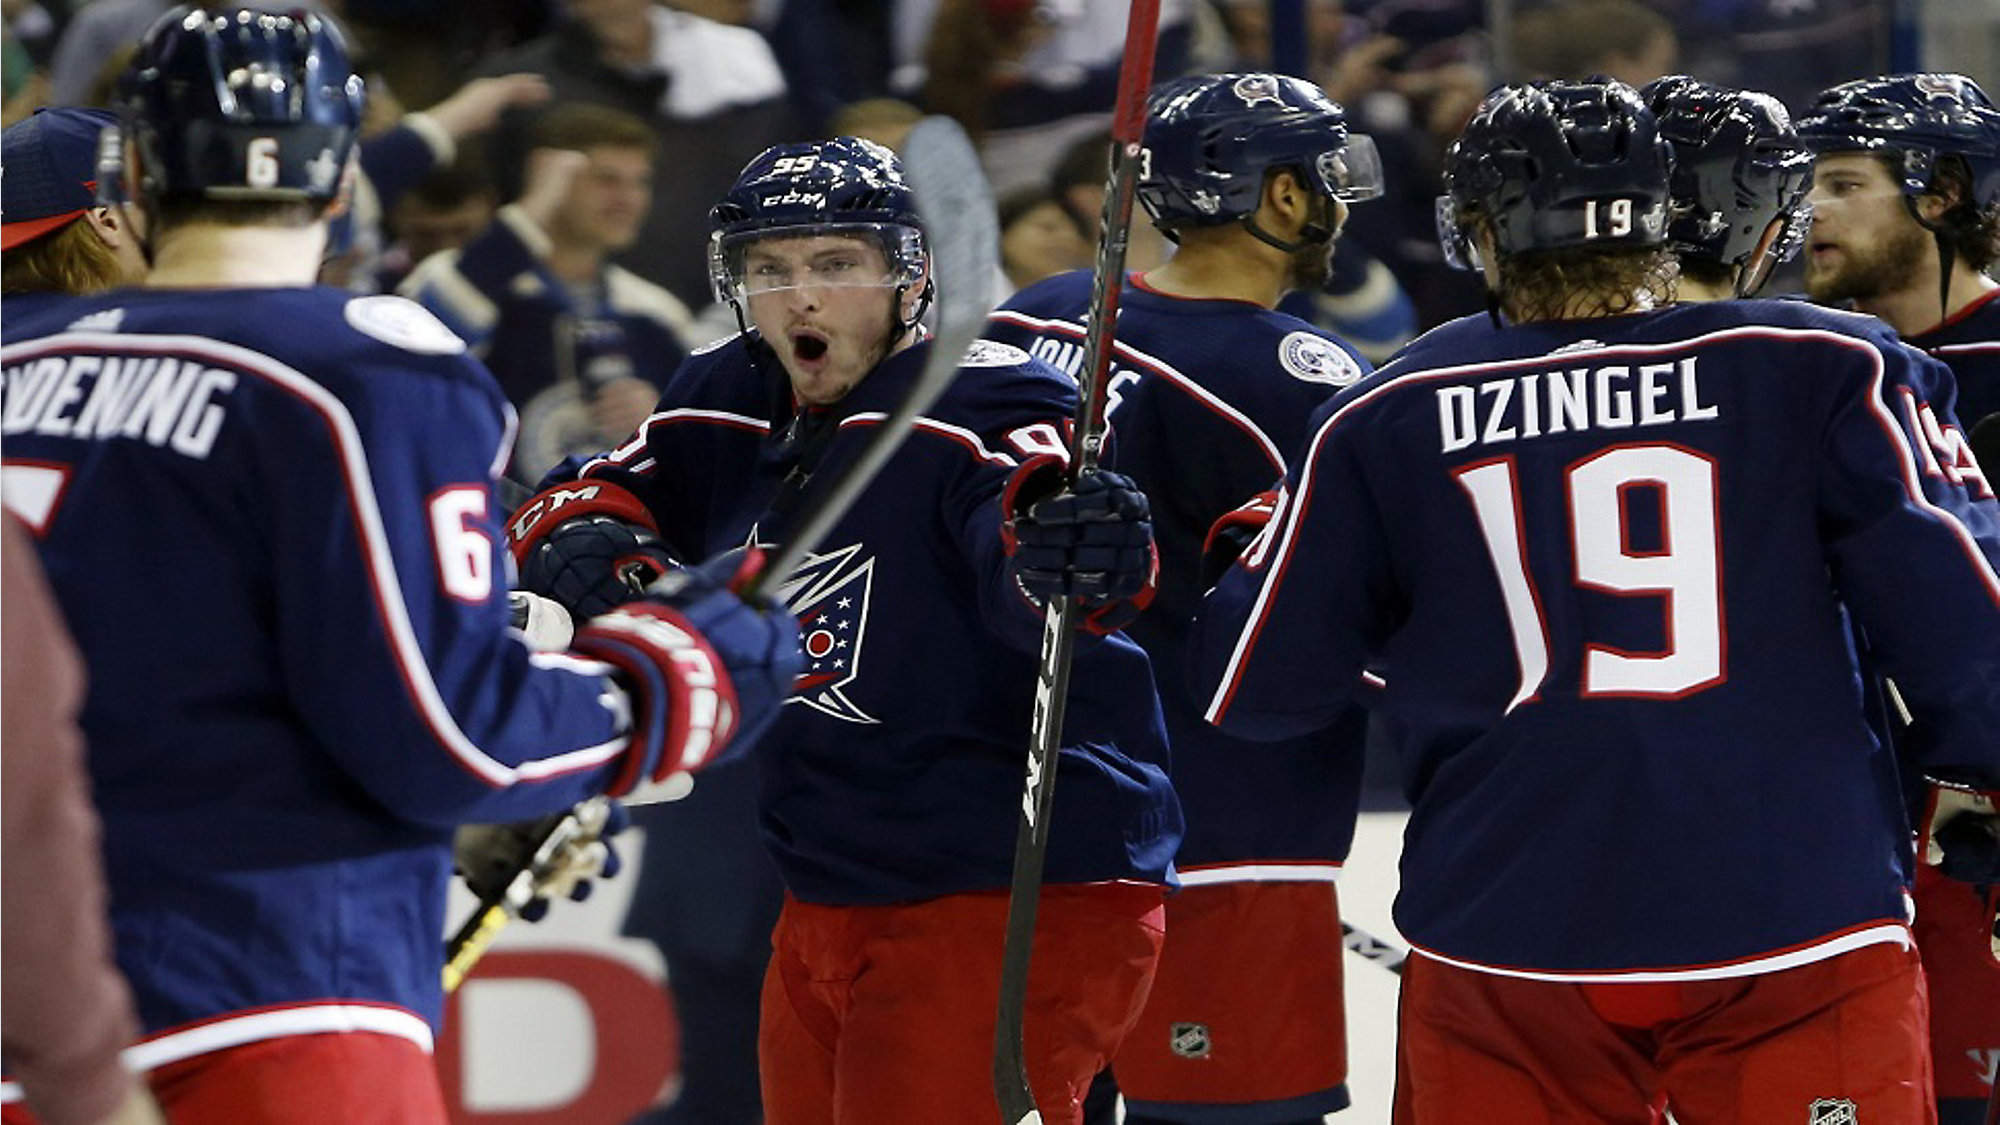 da6c993f5f7 Columbus Blue Jackets  forward Matt Duchene celebrates the team s win over  the Tampa Bay Lightning